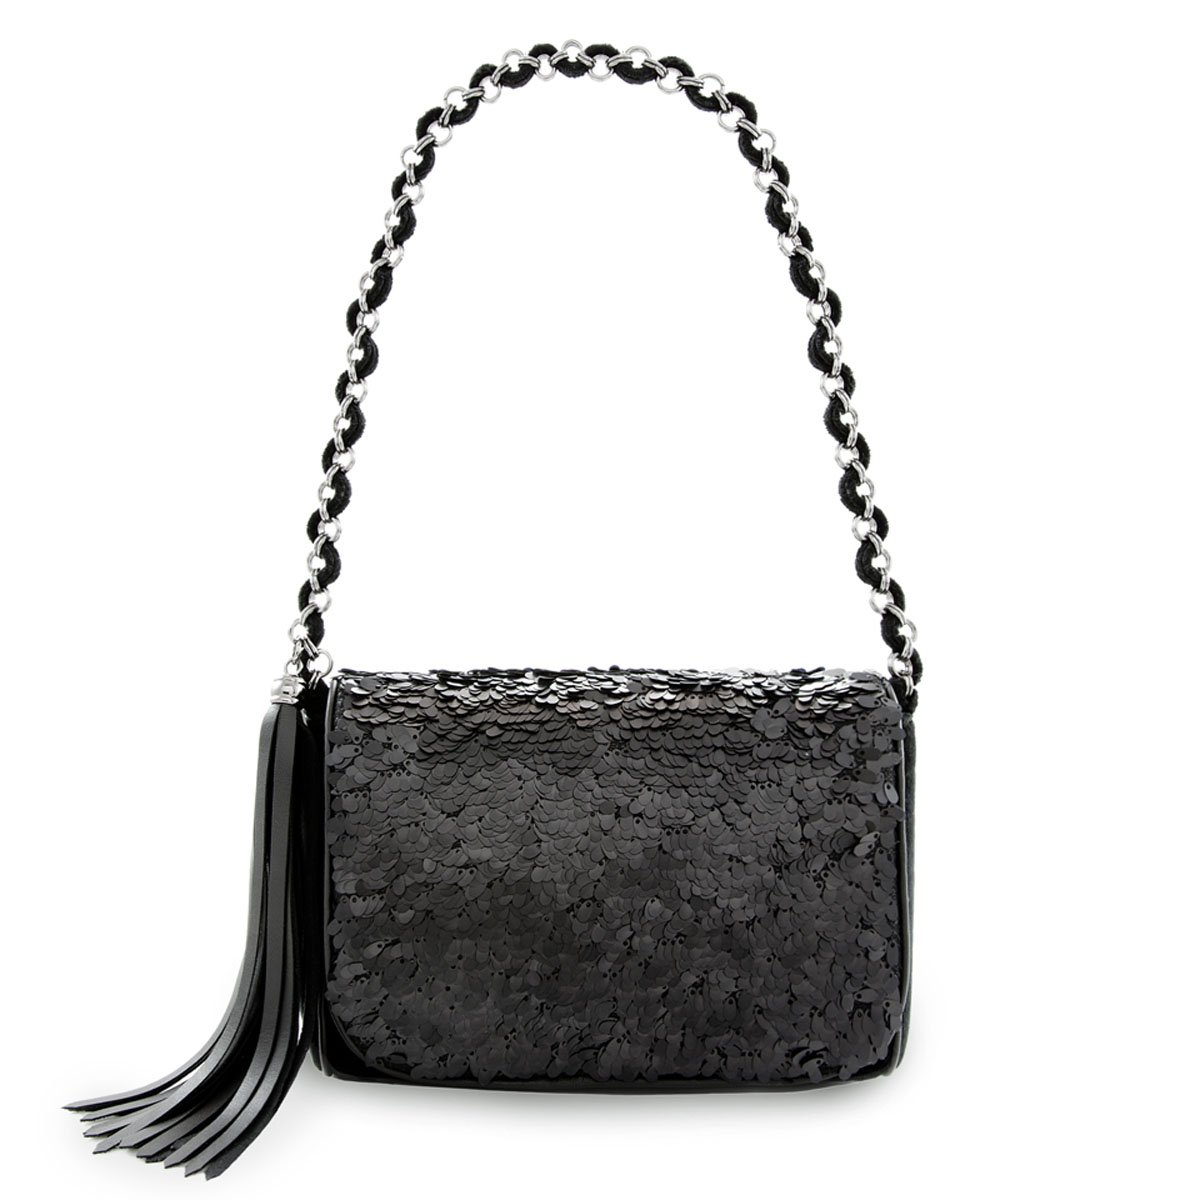 Eric Javits Luxury Fashion Designer Women's Handbag - Spangle Bag - Black